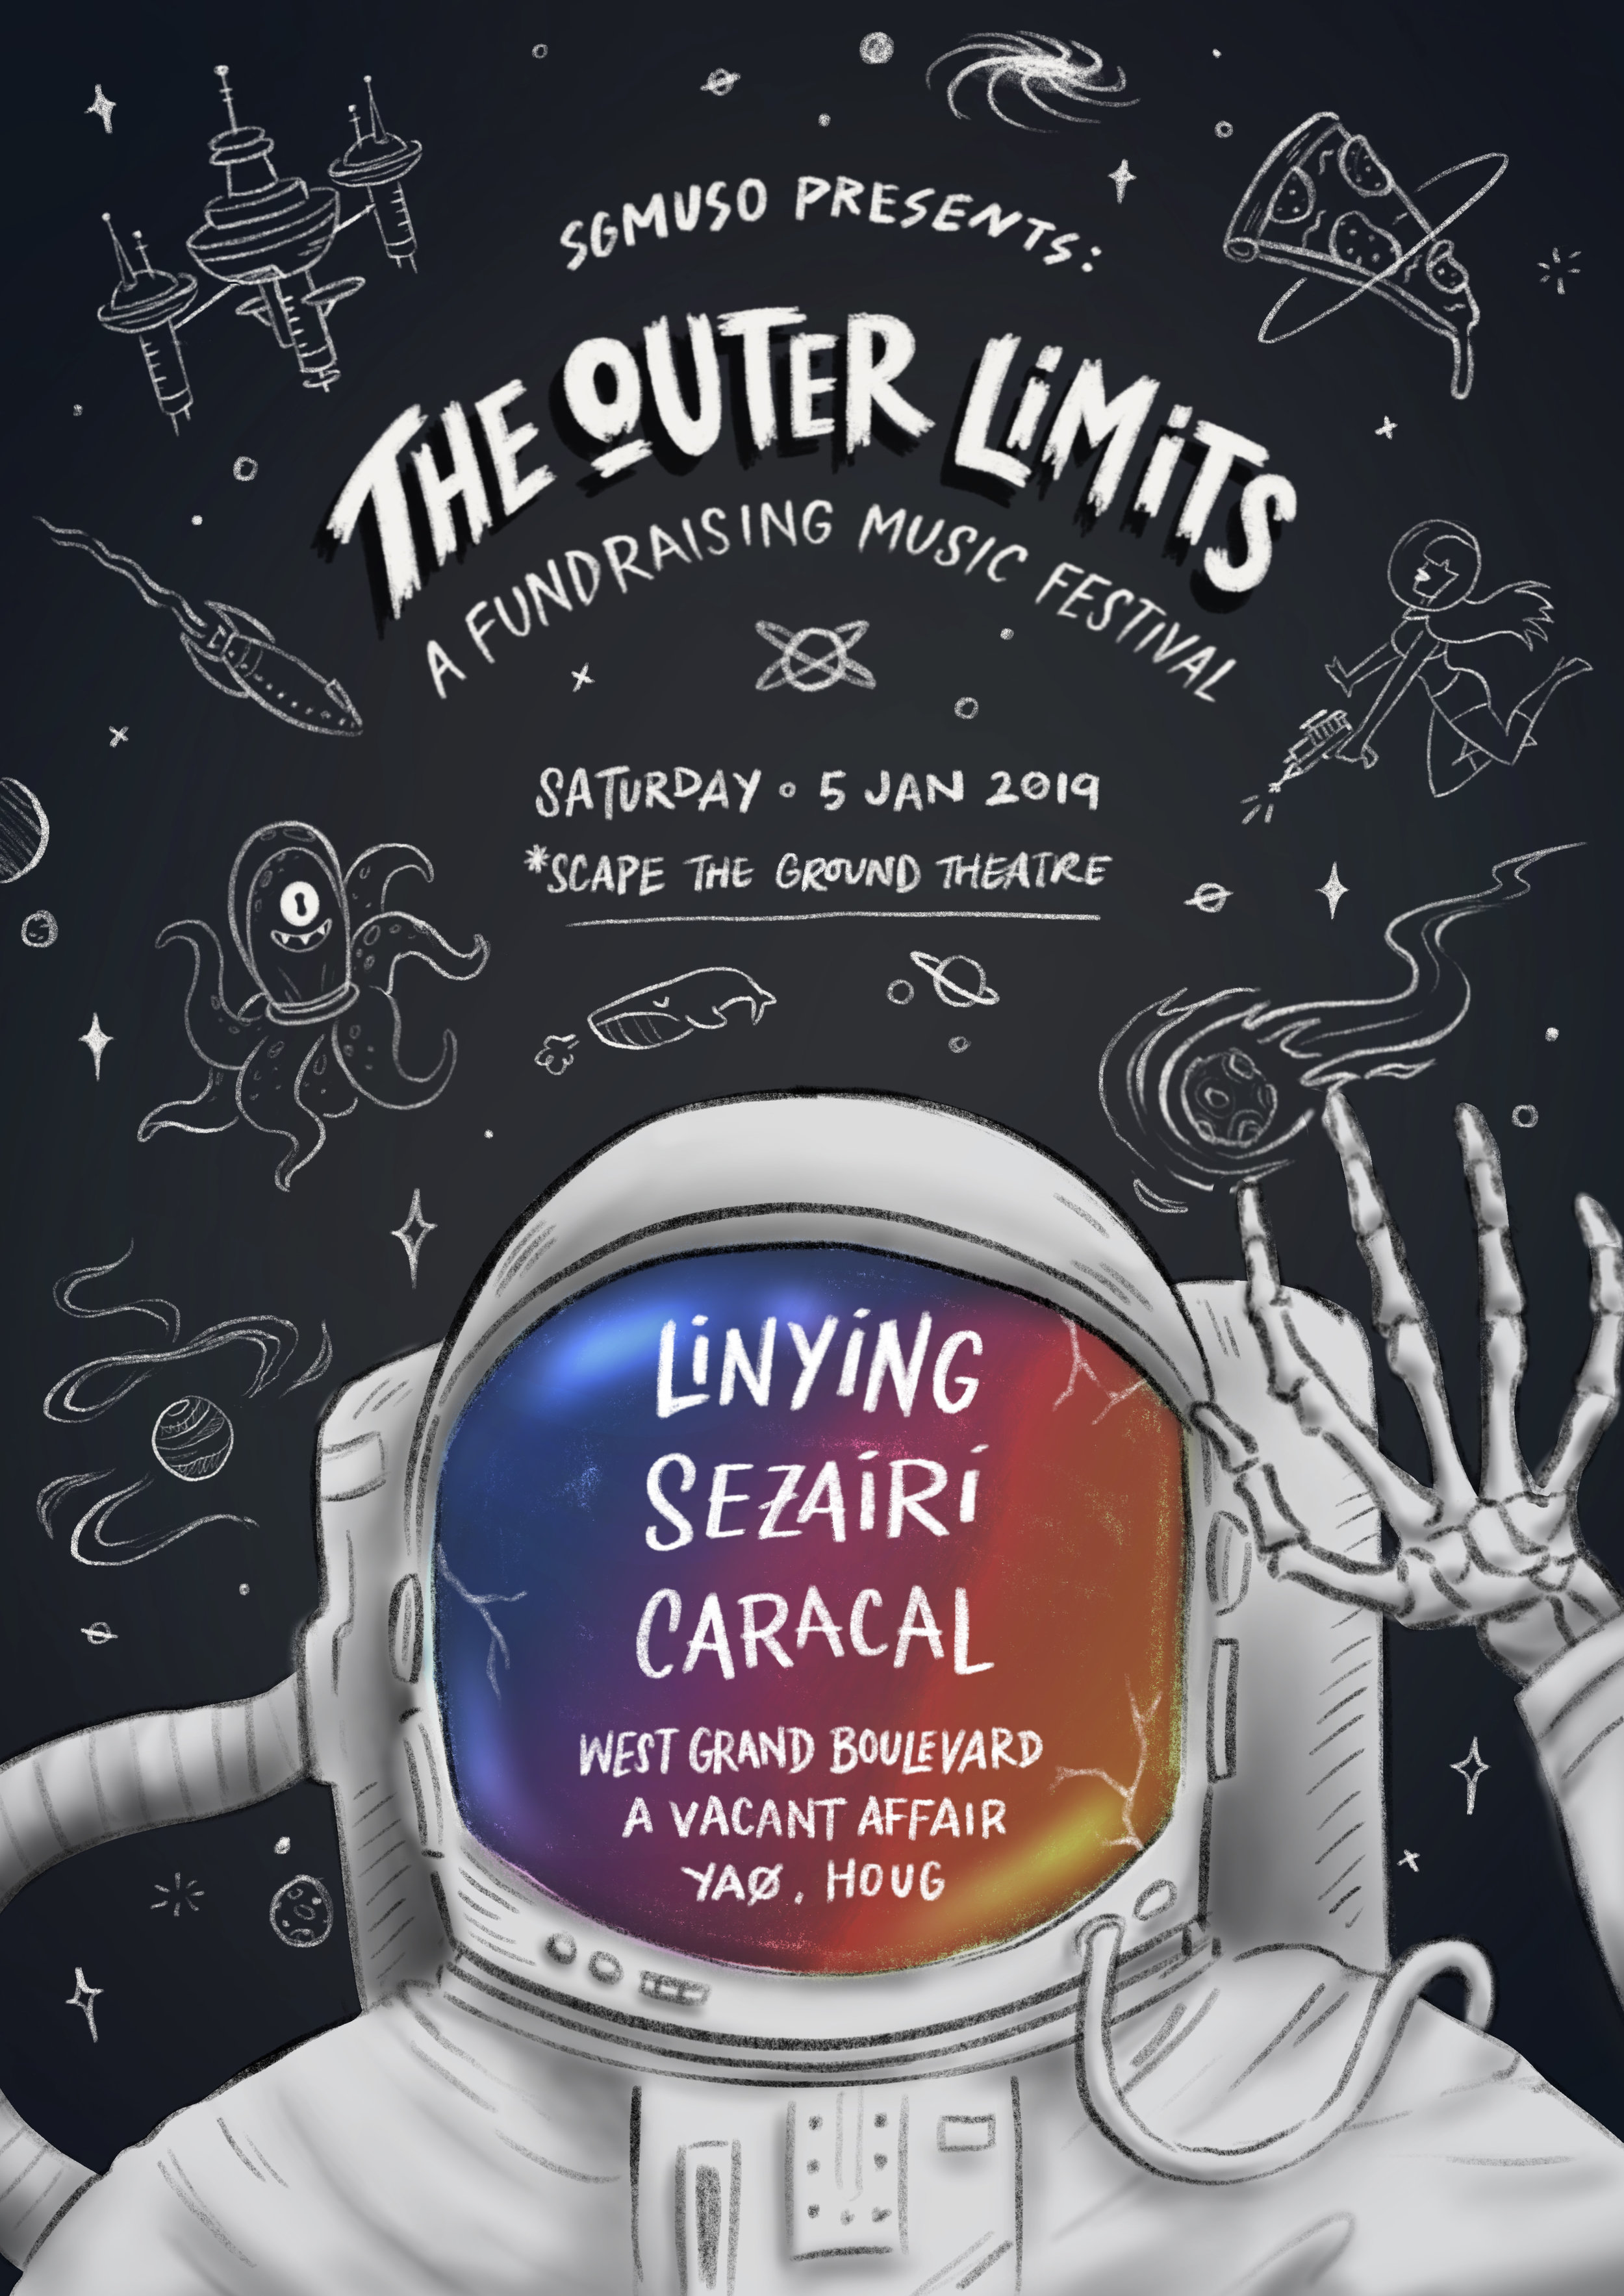 The Outer Limits - A4.jpg